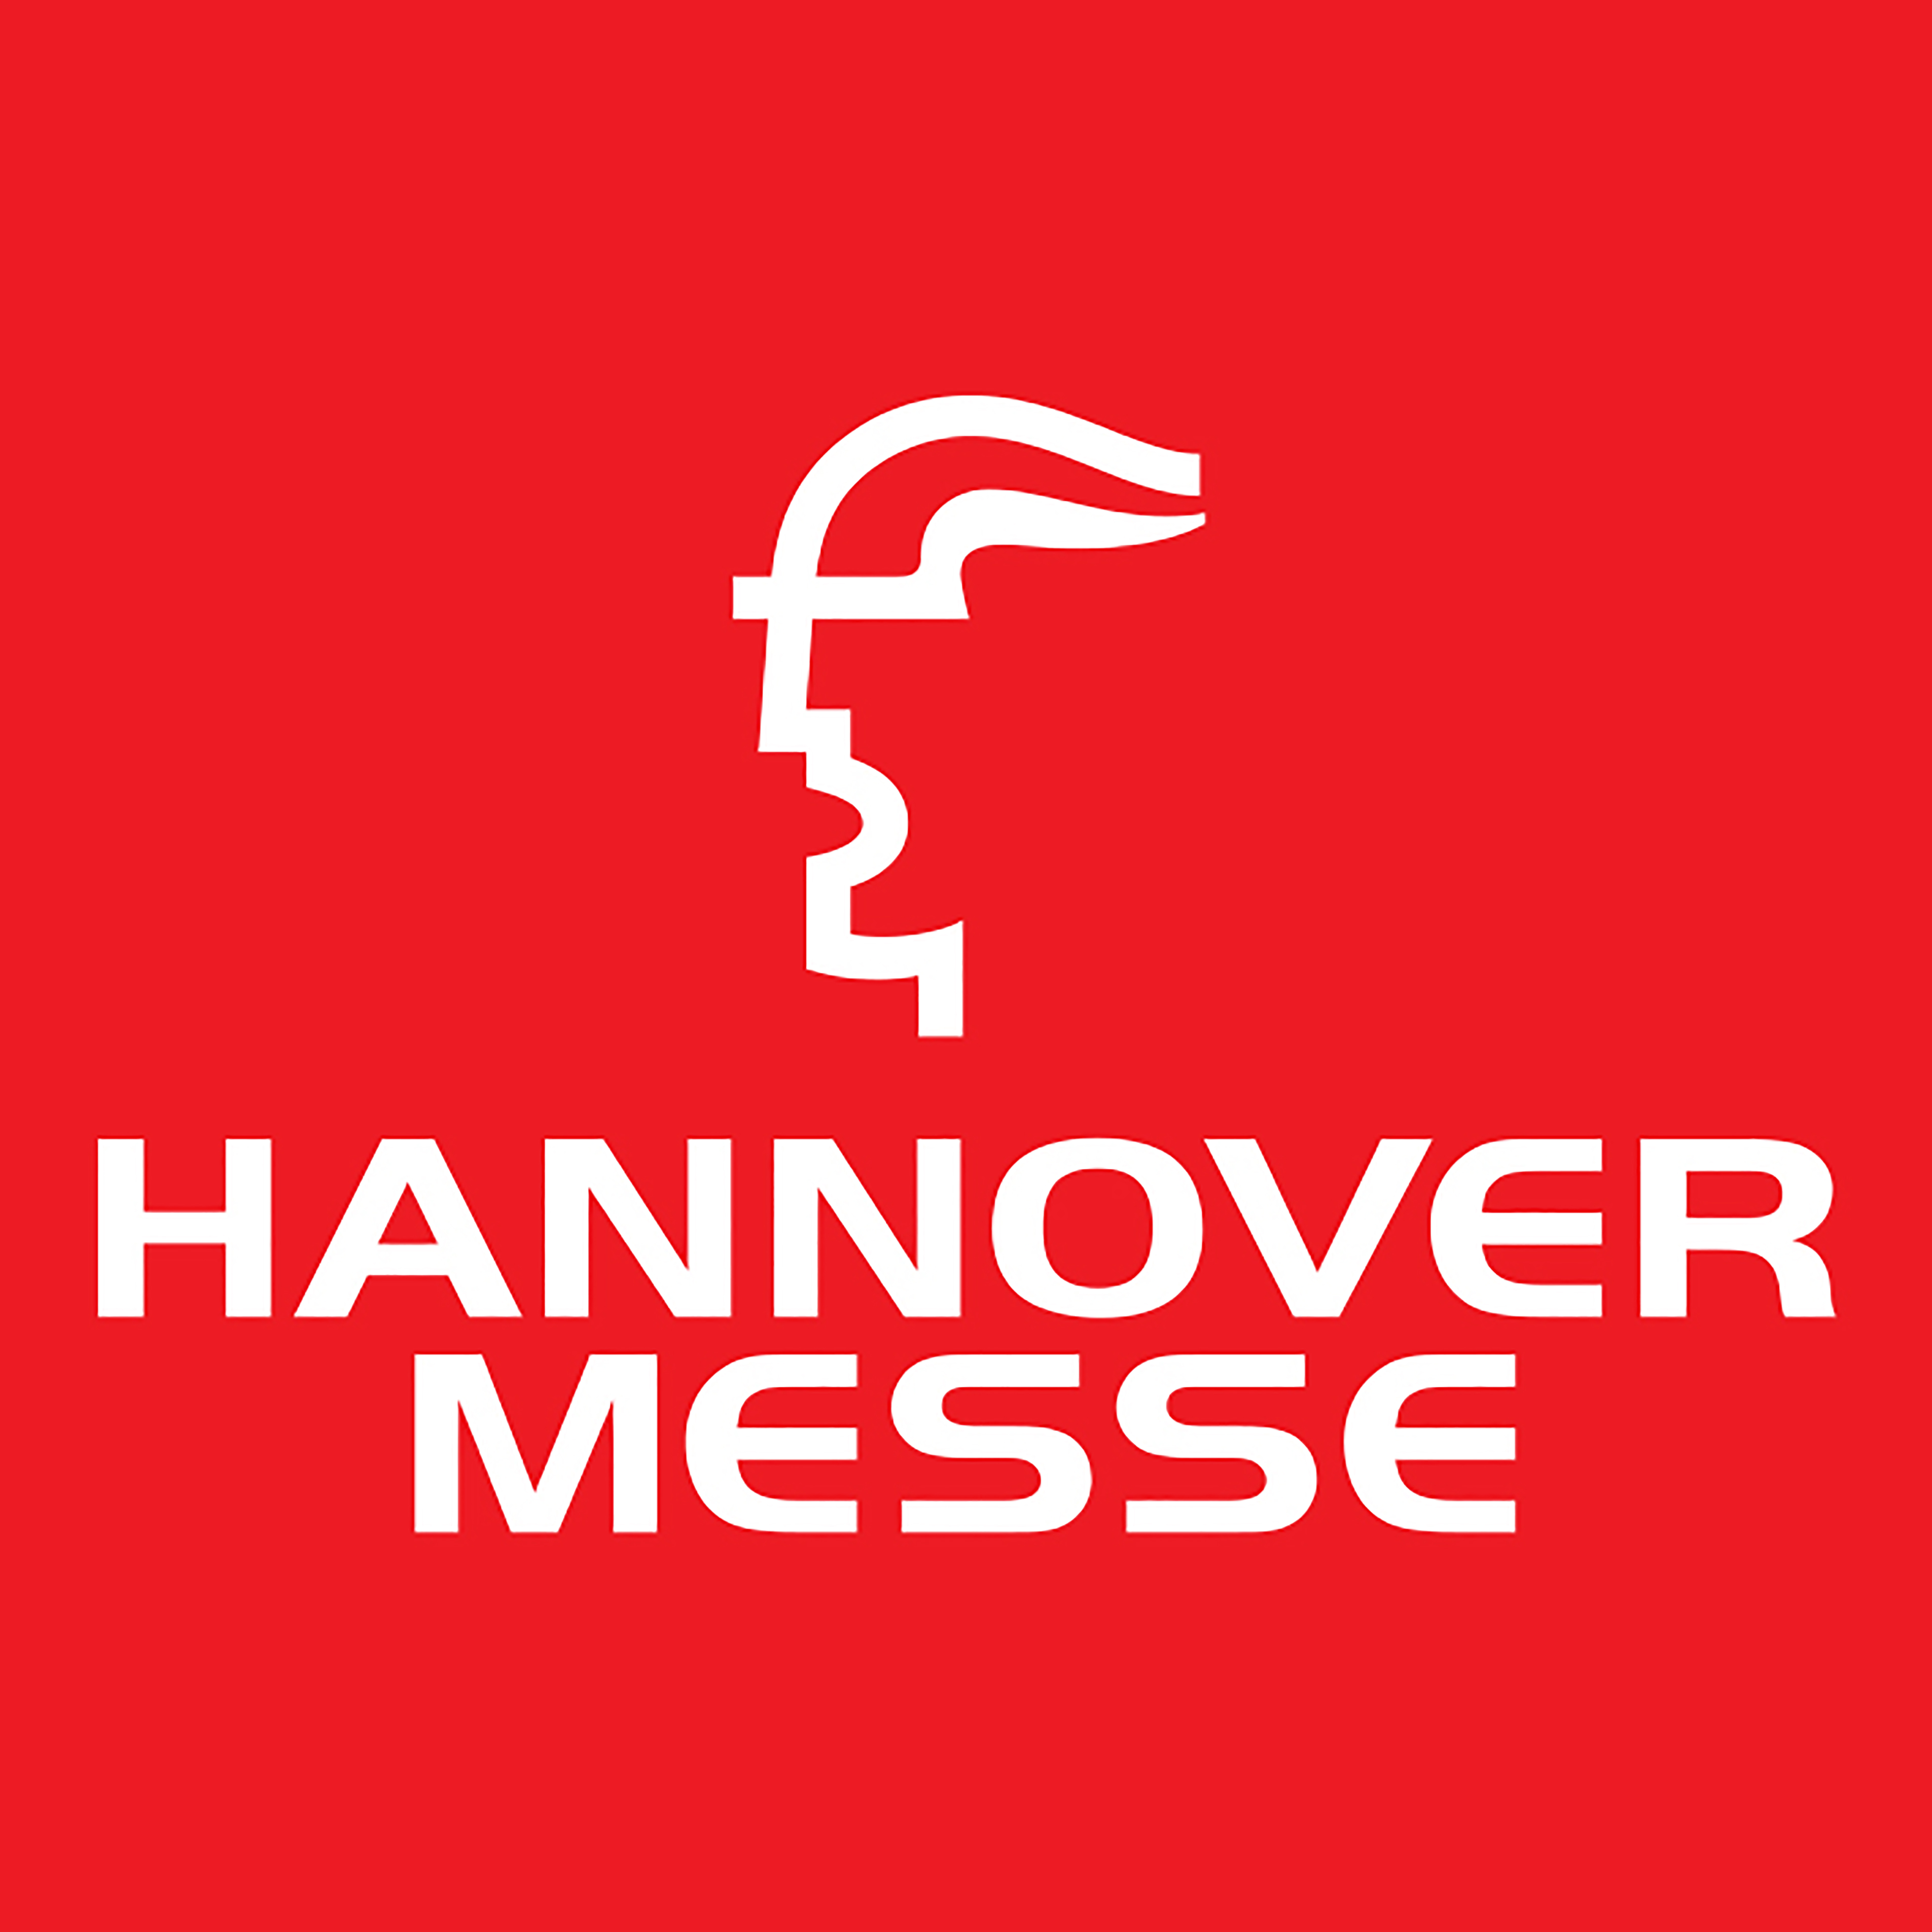 CLPA's latest open networking technology attracts lots of interest at Hannover Messe 2019